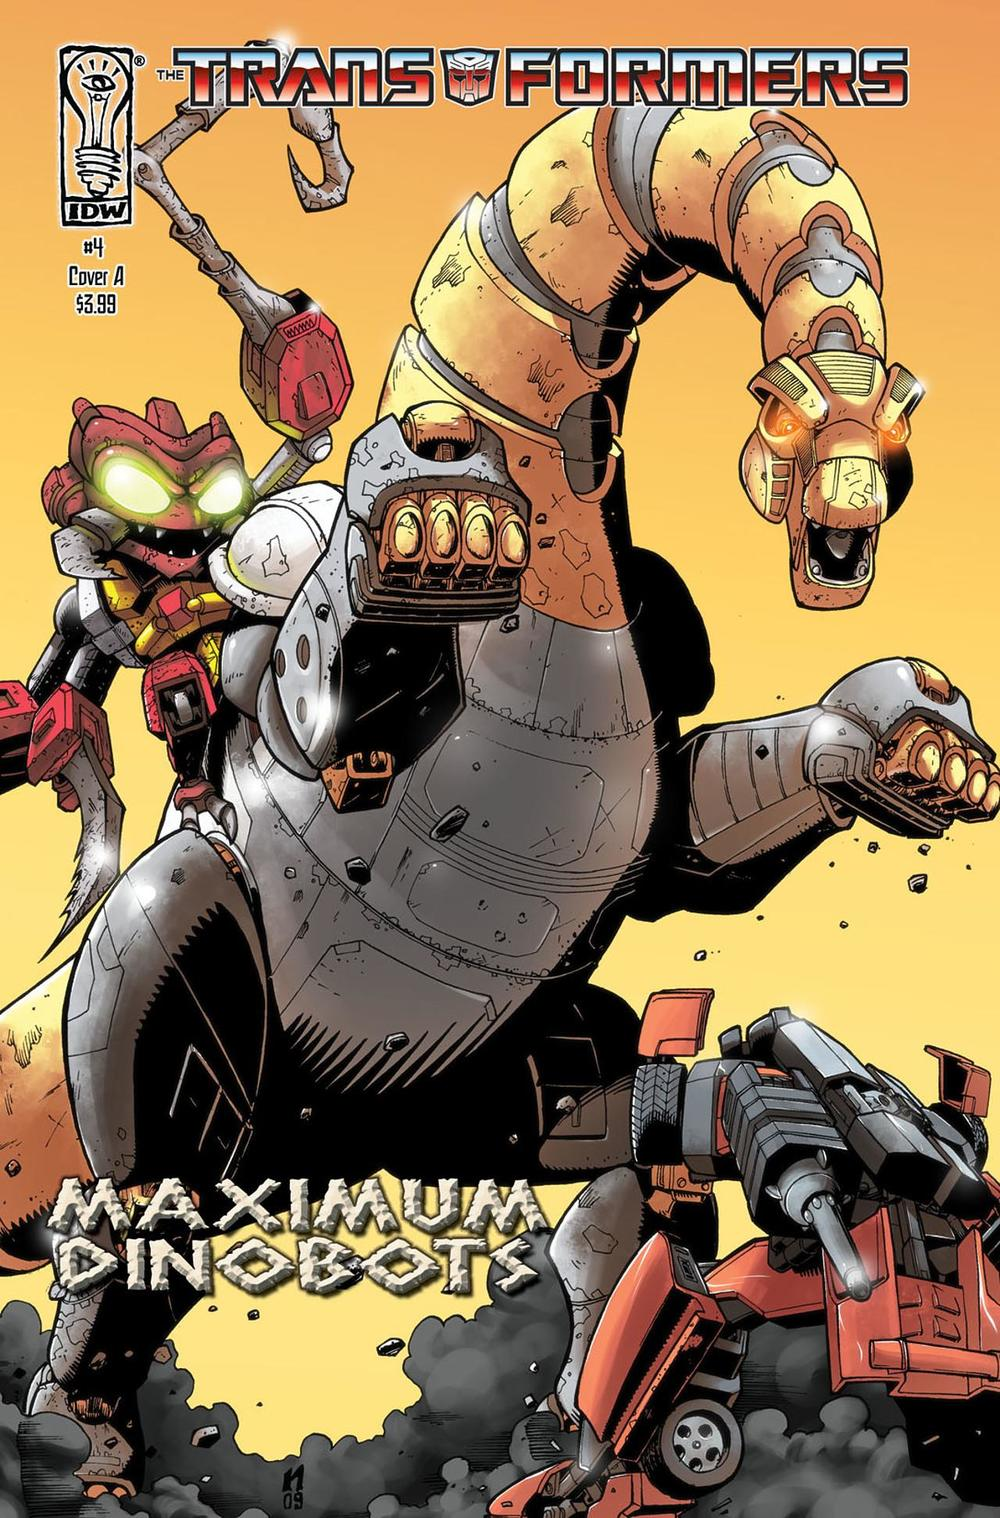 COVER A: NICK ROCHE AND JOANA LAFUENTE